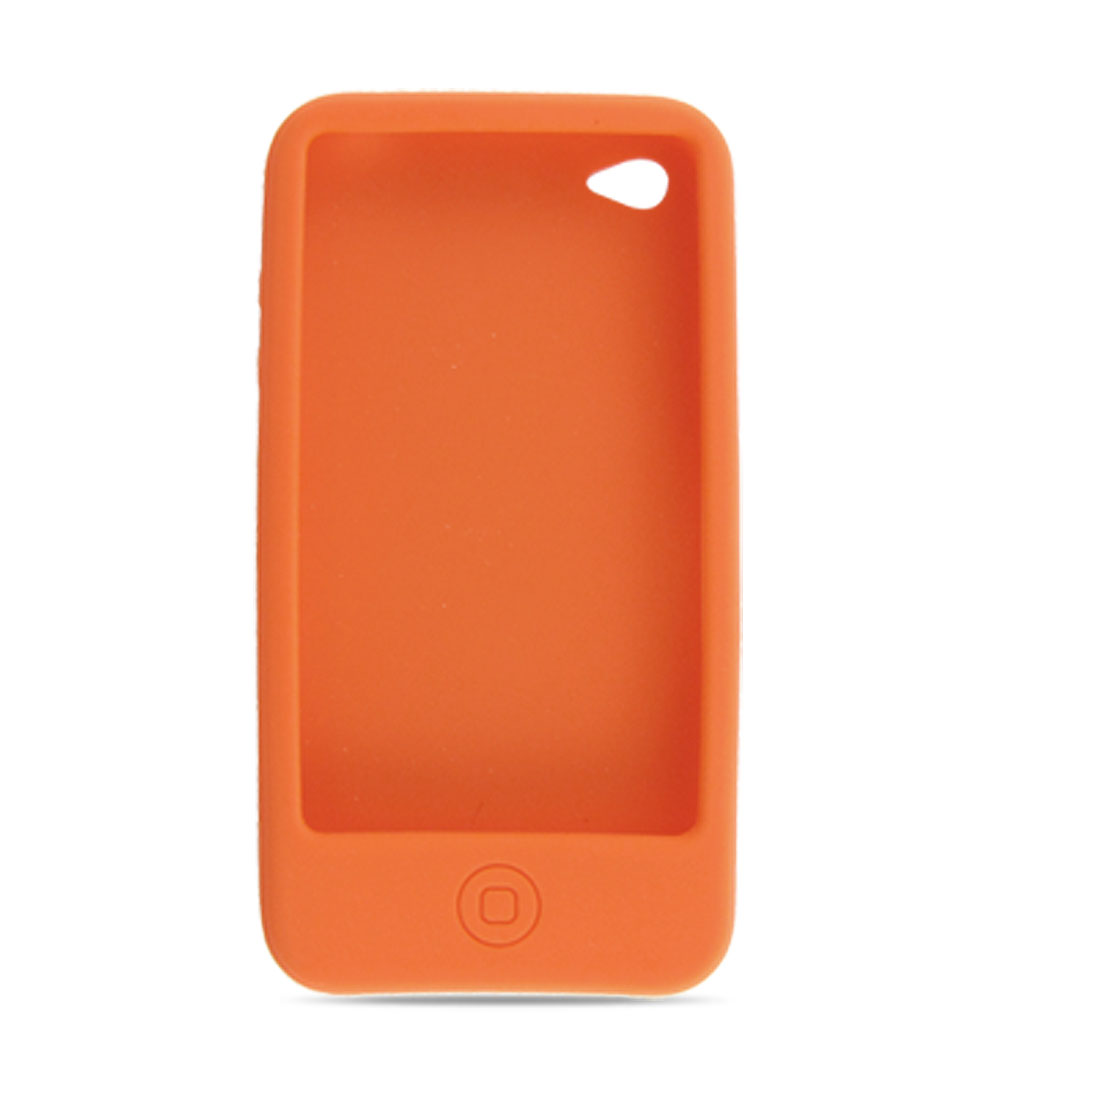 Silicone Skin Case Cover for iPhone 4 4G Orange